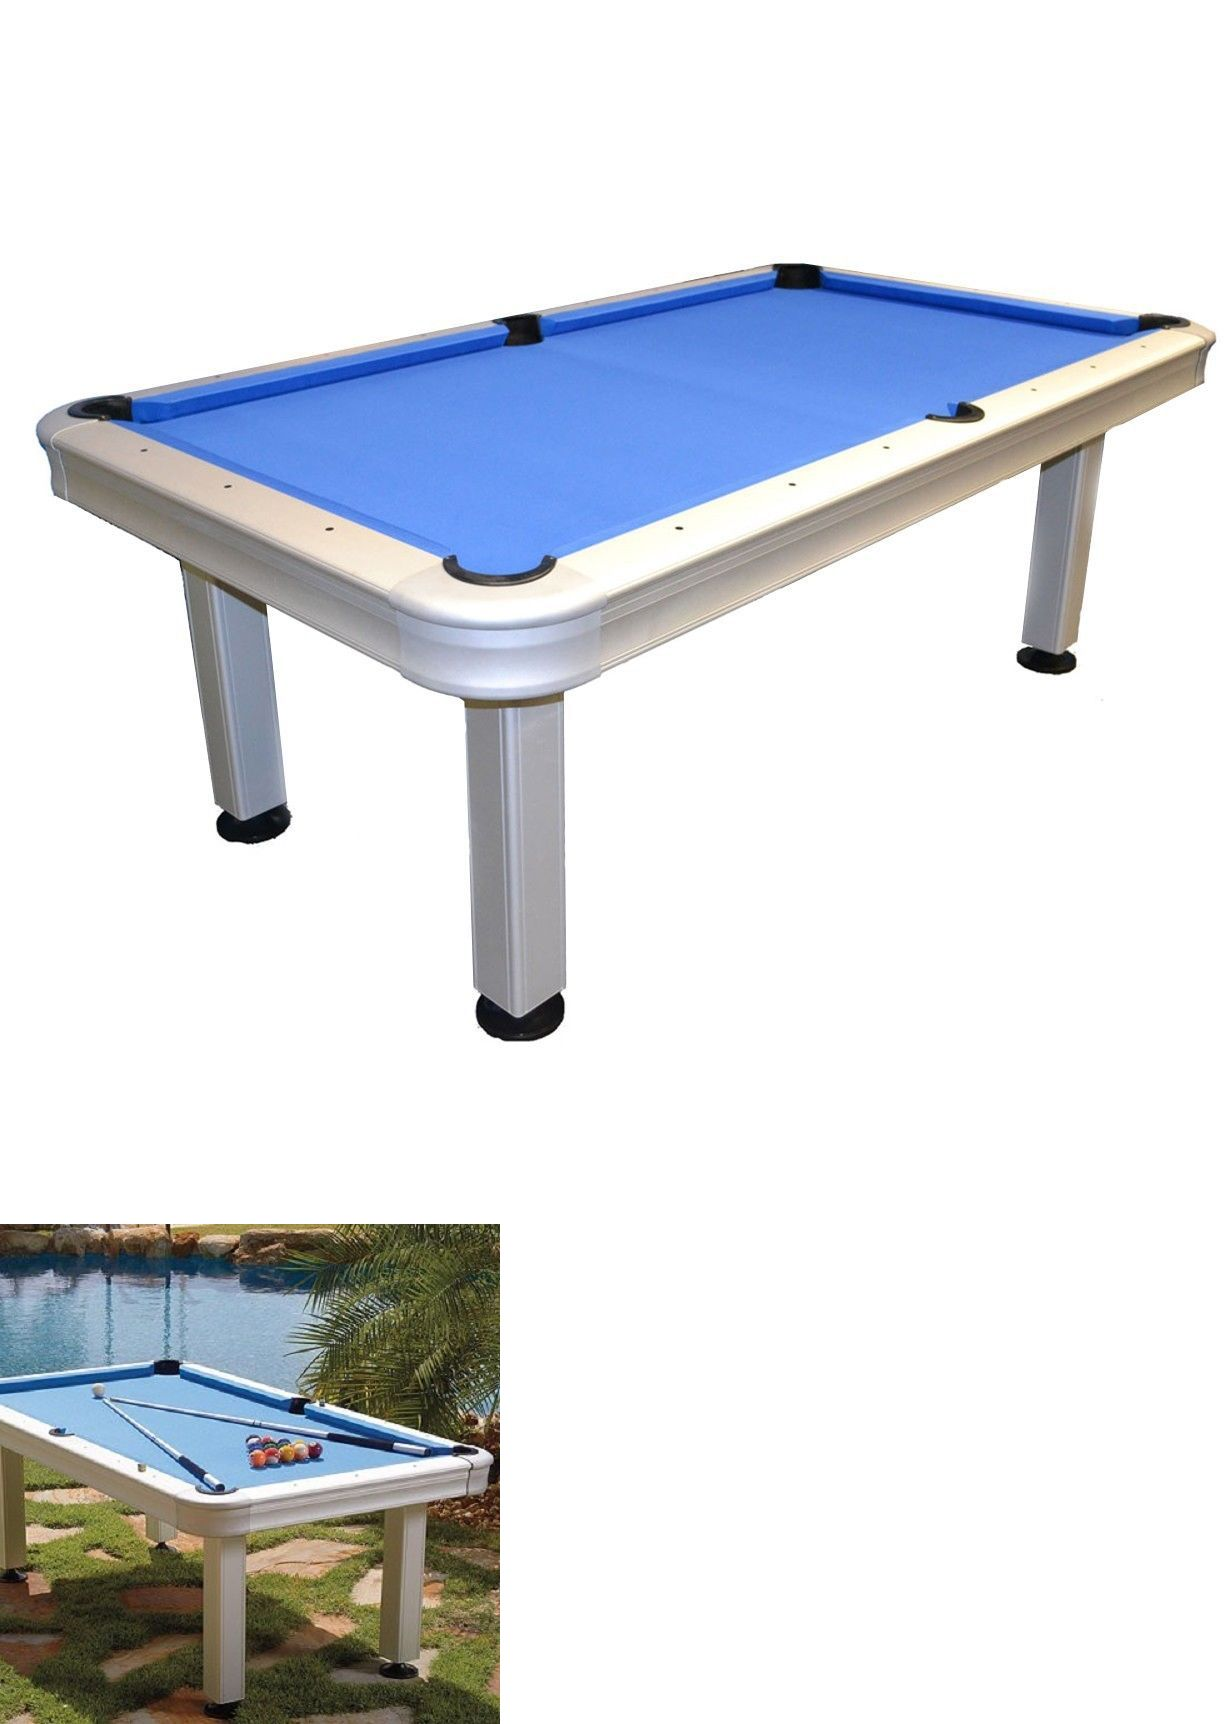 Pool table legs accessories for sale - Tables 21213 St Croix 7 Outdoor Pool Table W Accessories And Free Shipping